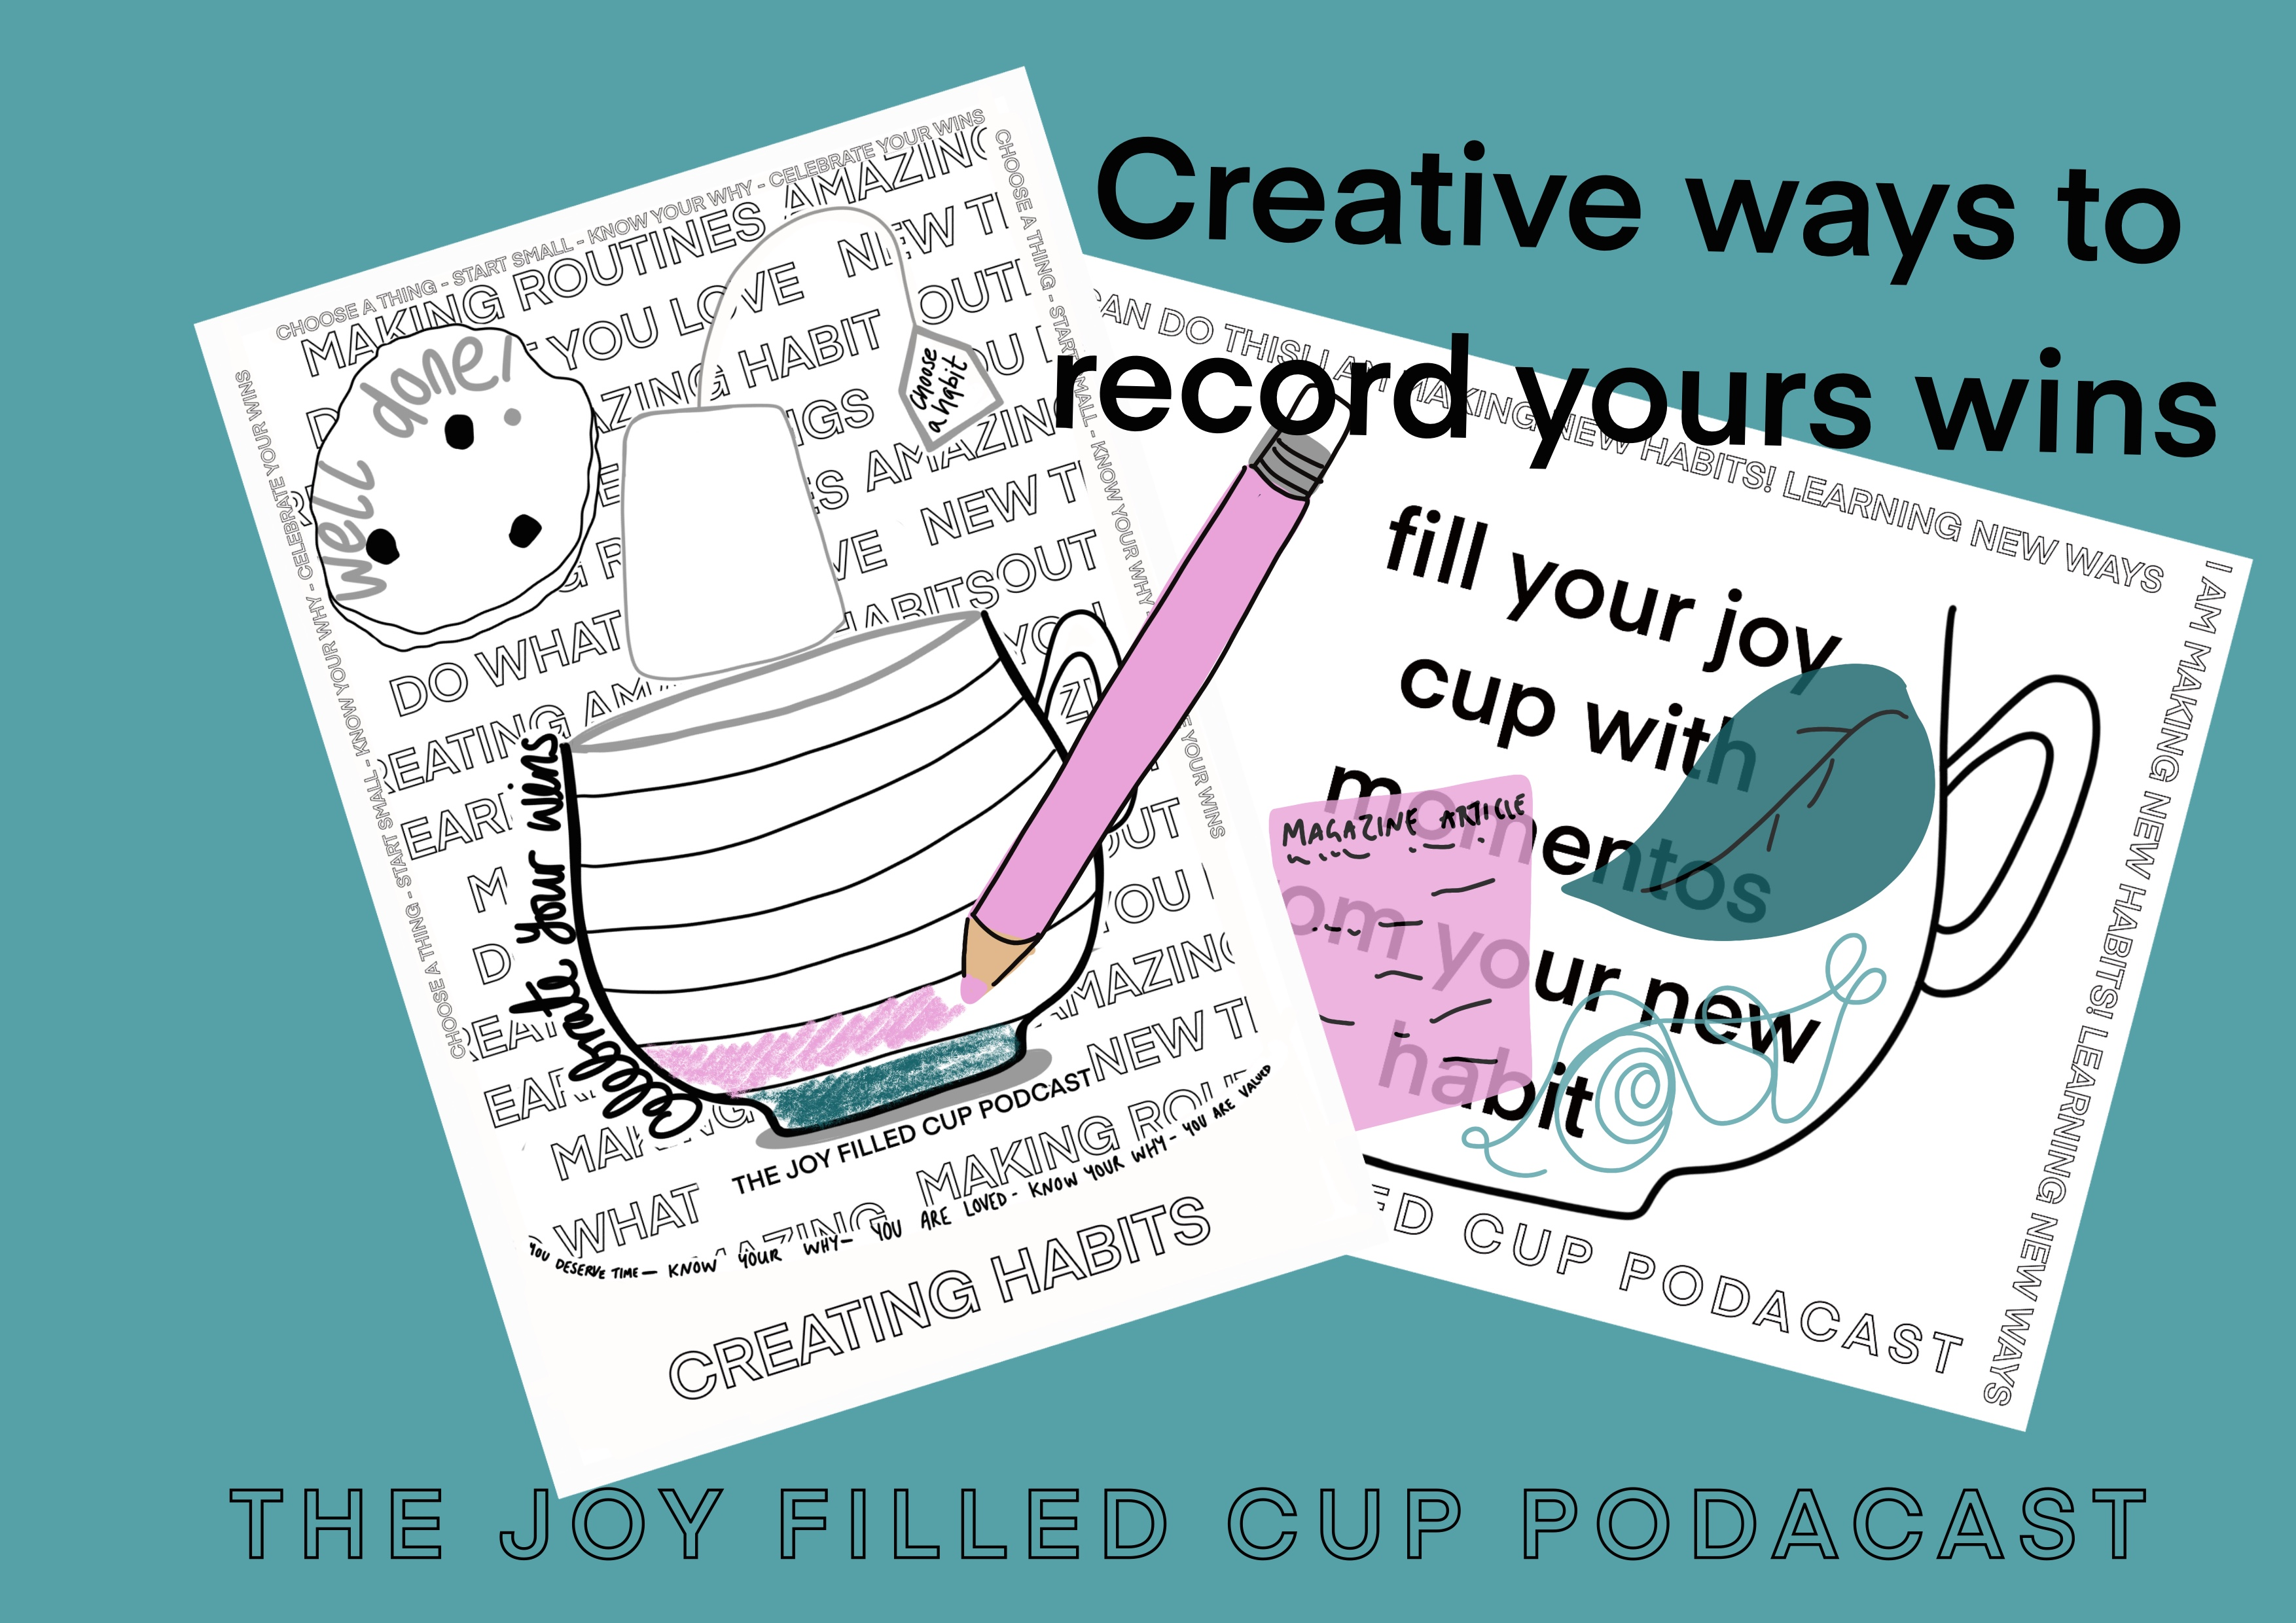 Relative ways to record your wins - the joy filled cup